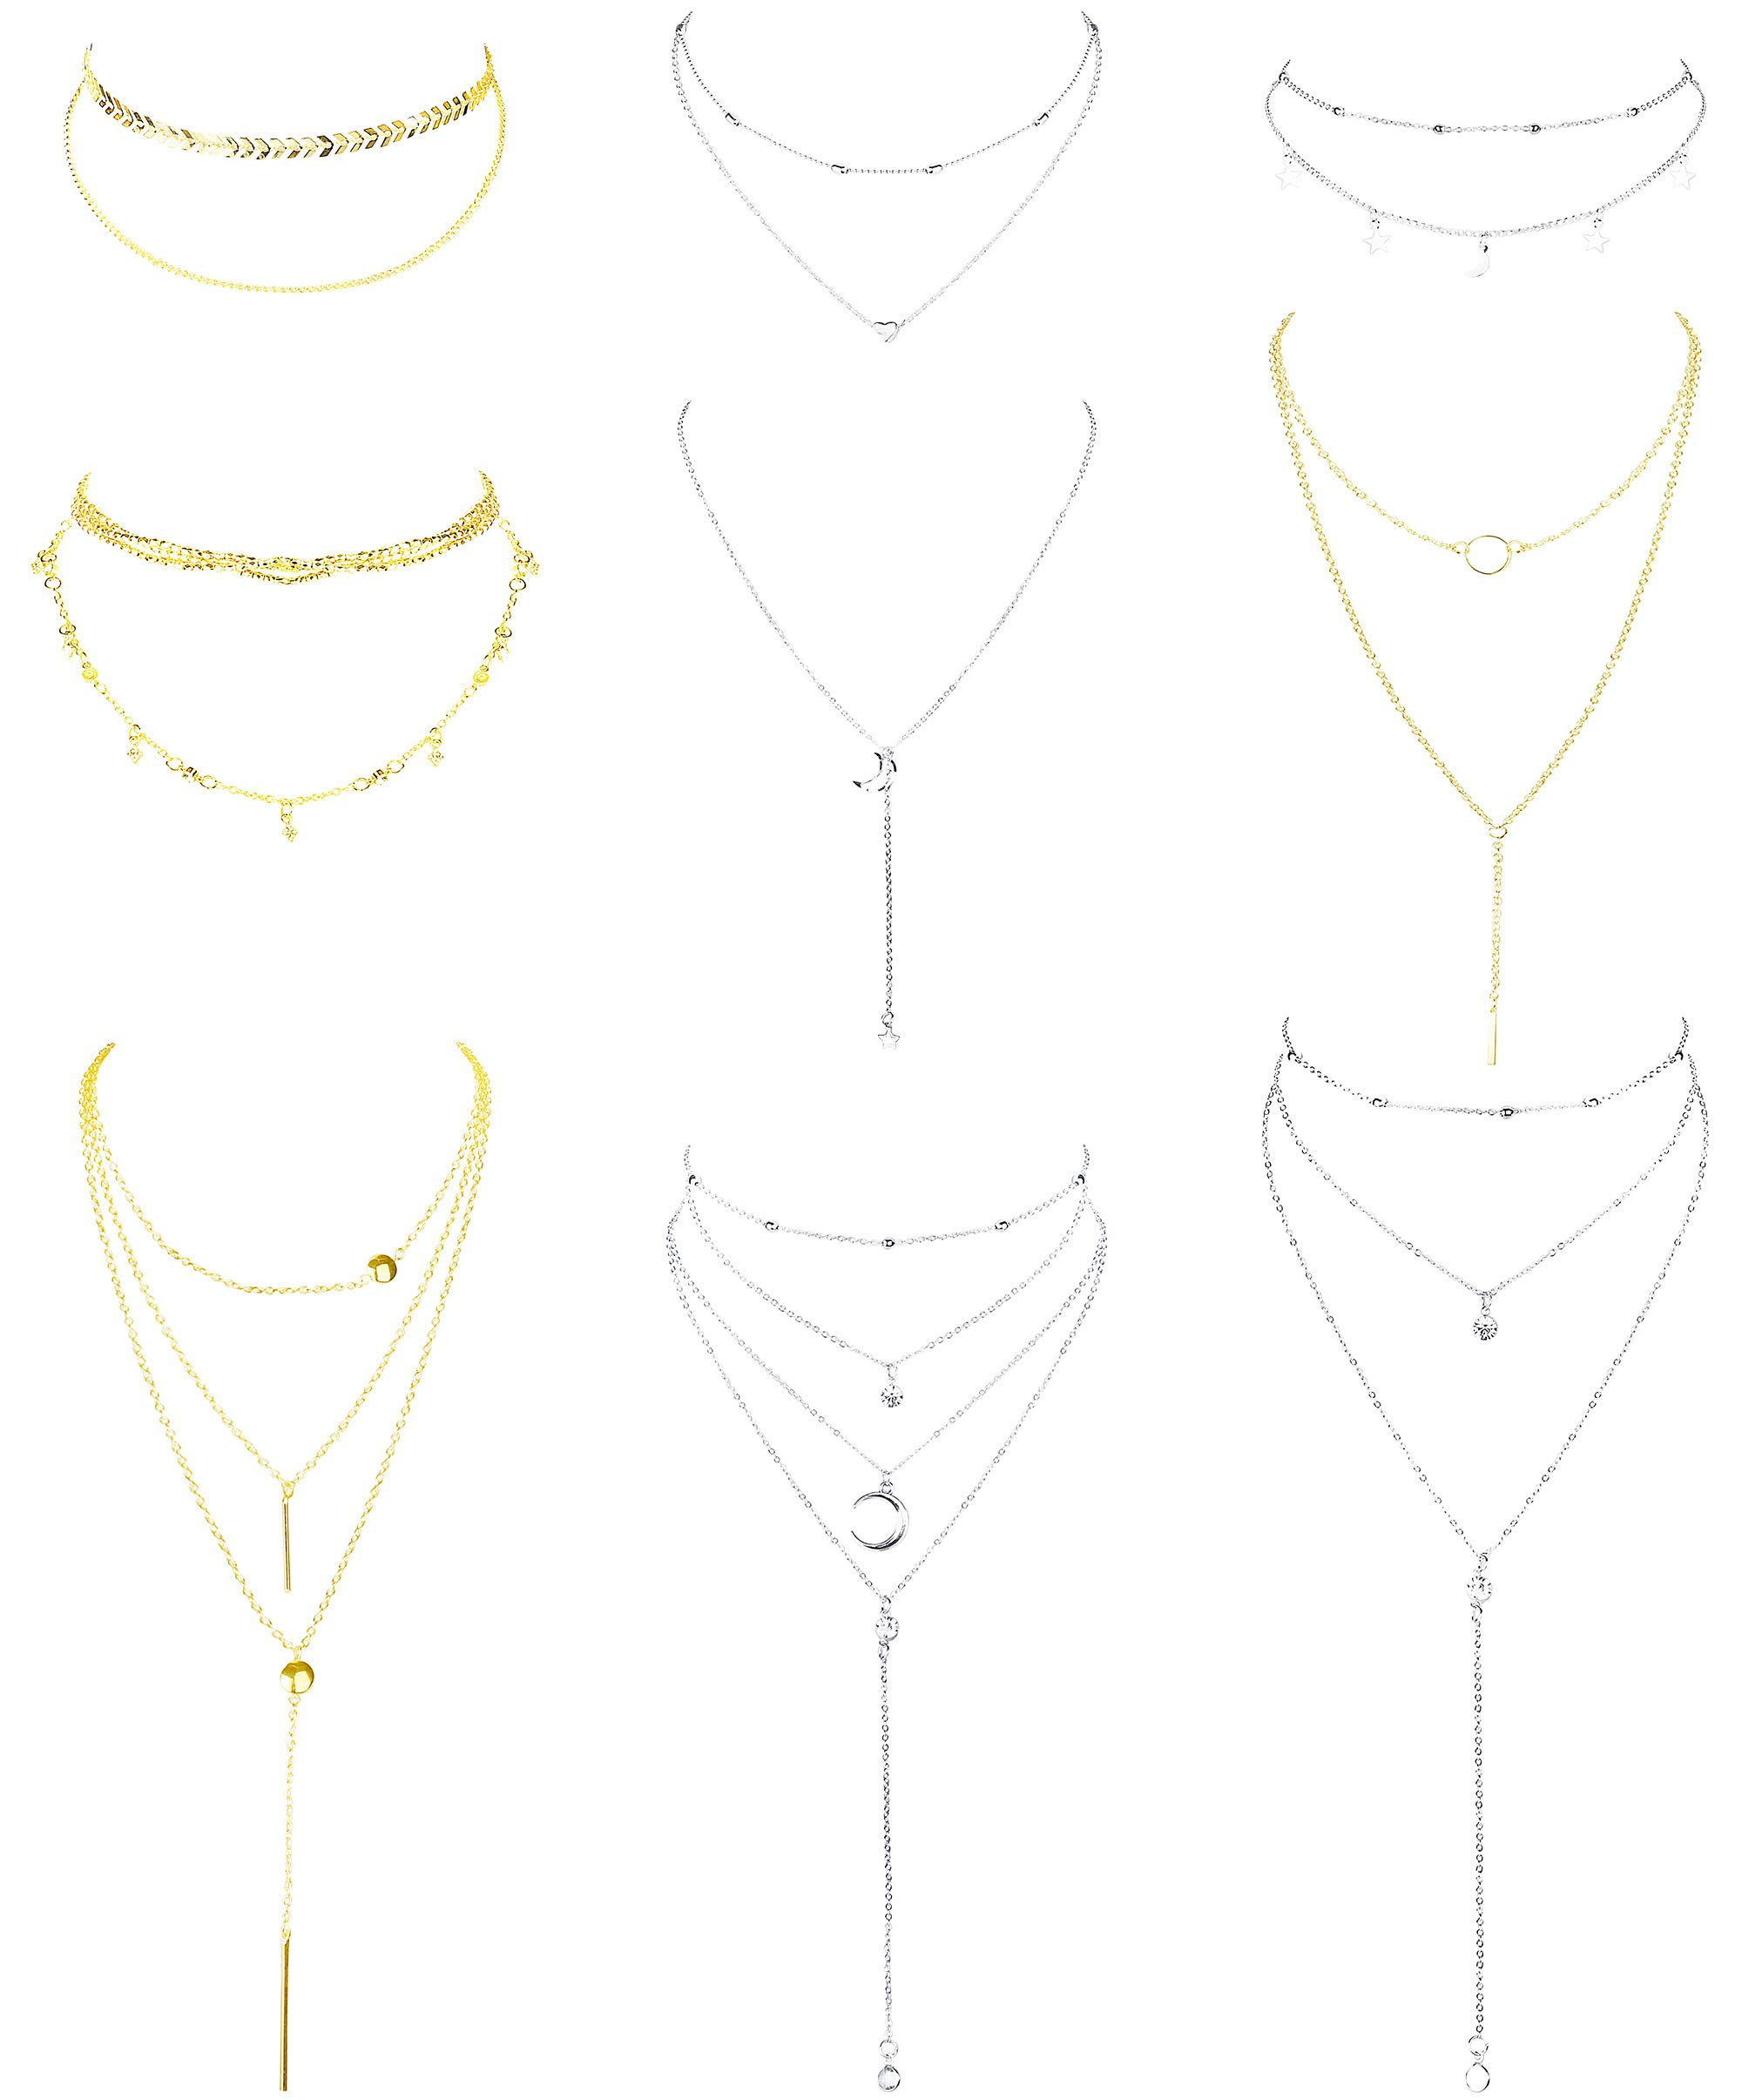 LOYALLOOK 8pcs Boho Layered Necklace Pendant Gold & Silver Tone Necklace Y Necklace Bar Pendent Necklace Set for Women Girls Mother Jewelry Set by LOYALLOOK